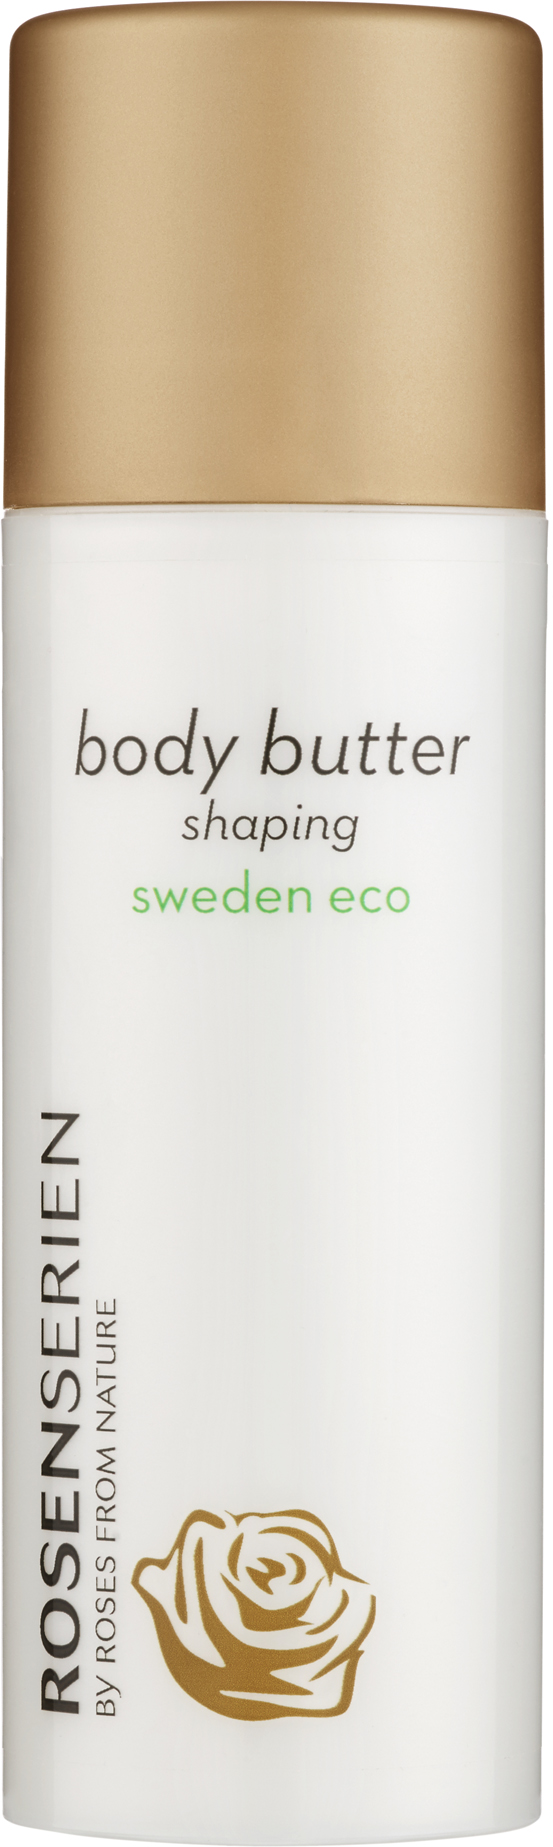 Body Butter Shaping, Uppstramande intensivkräm